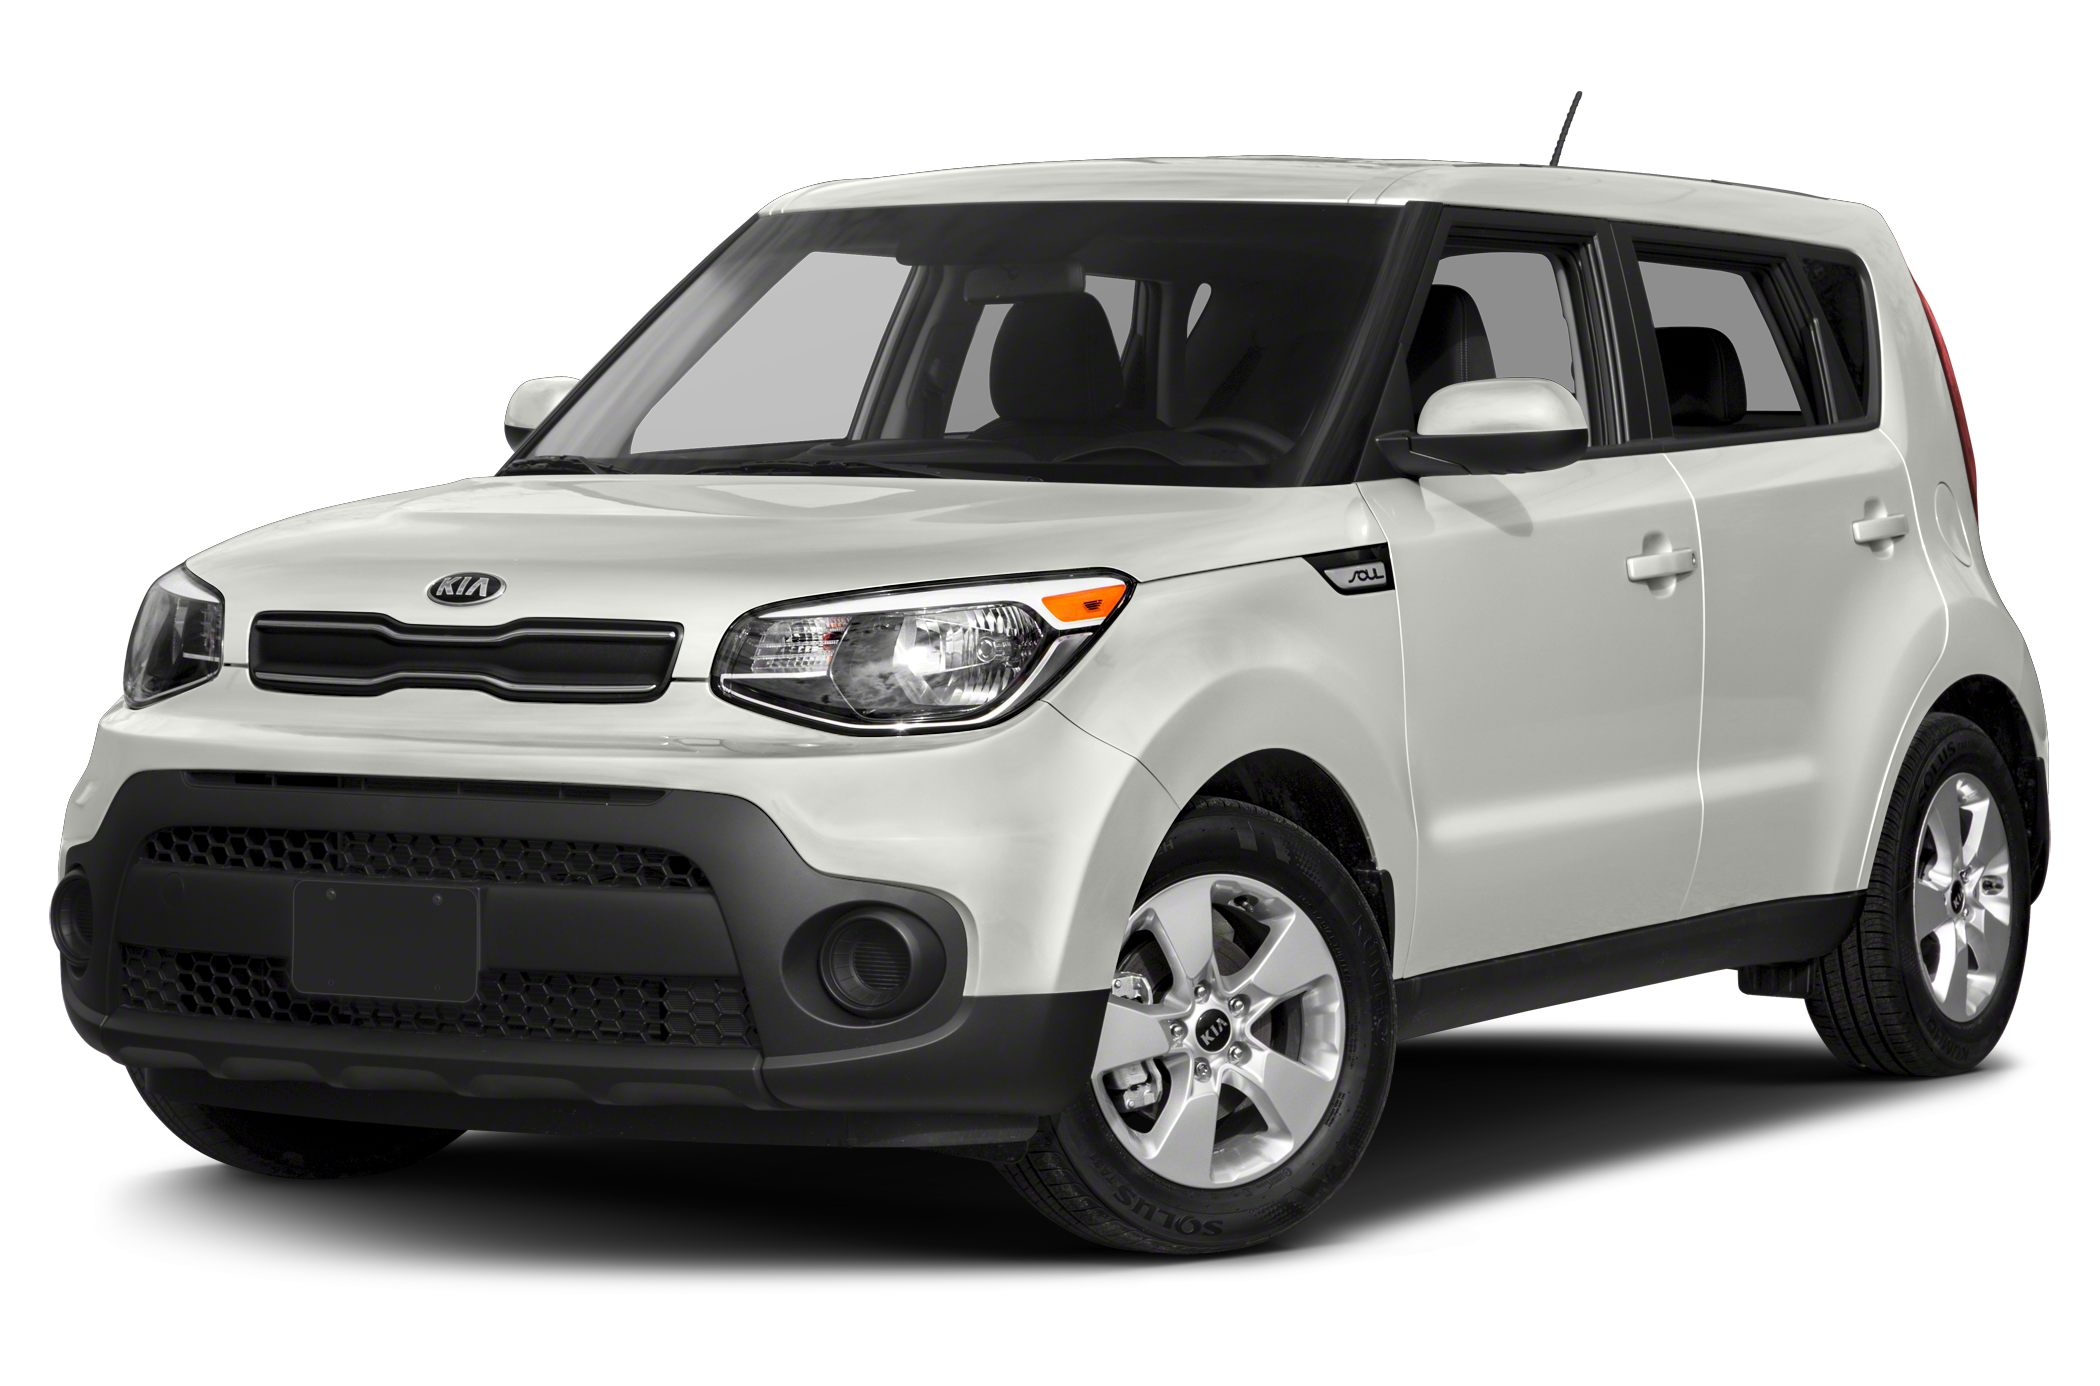 2018 Kia Soul Deals Prices Incentives Amp Leases Overview